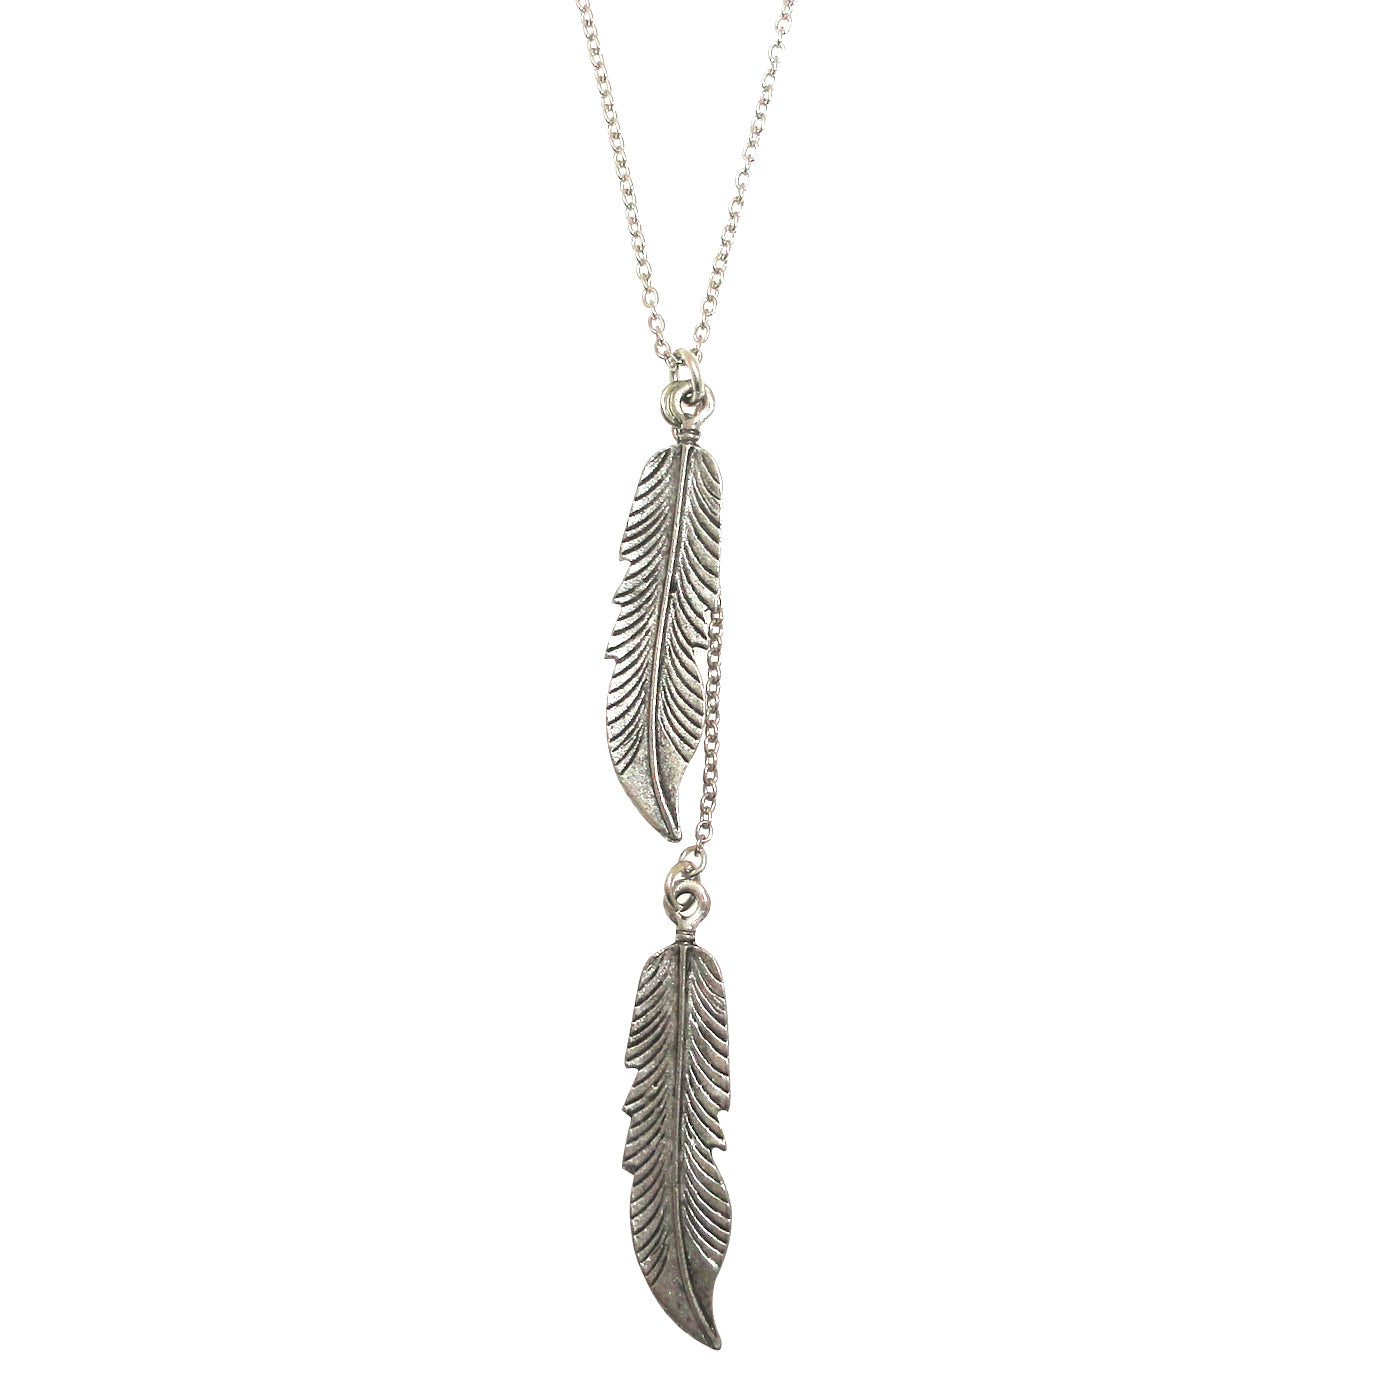 Silver feather necklace by Jenny Dayco